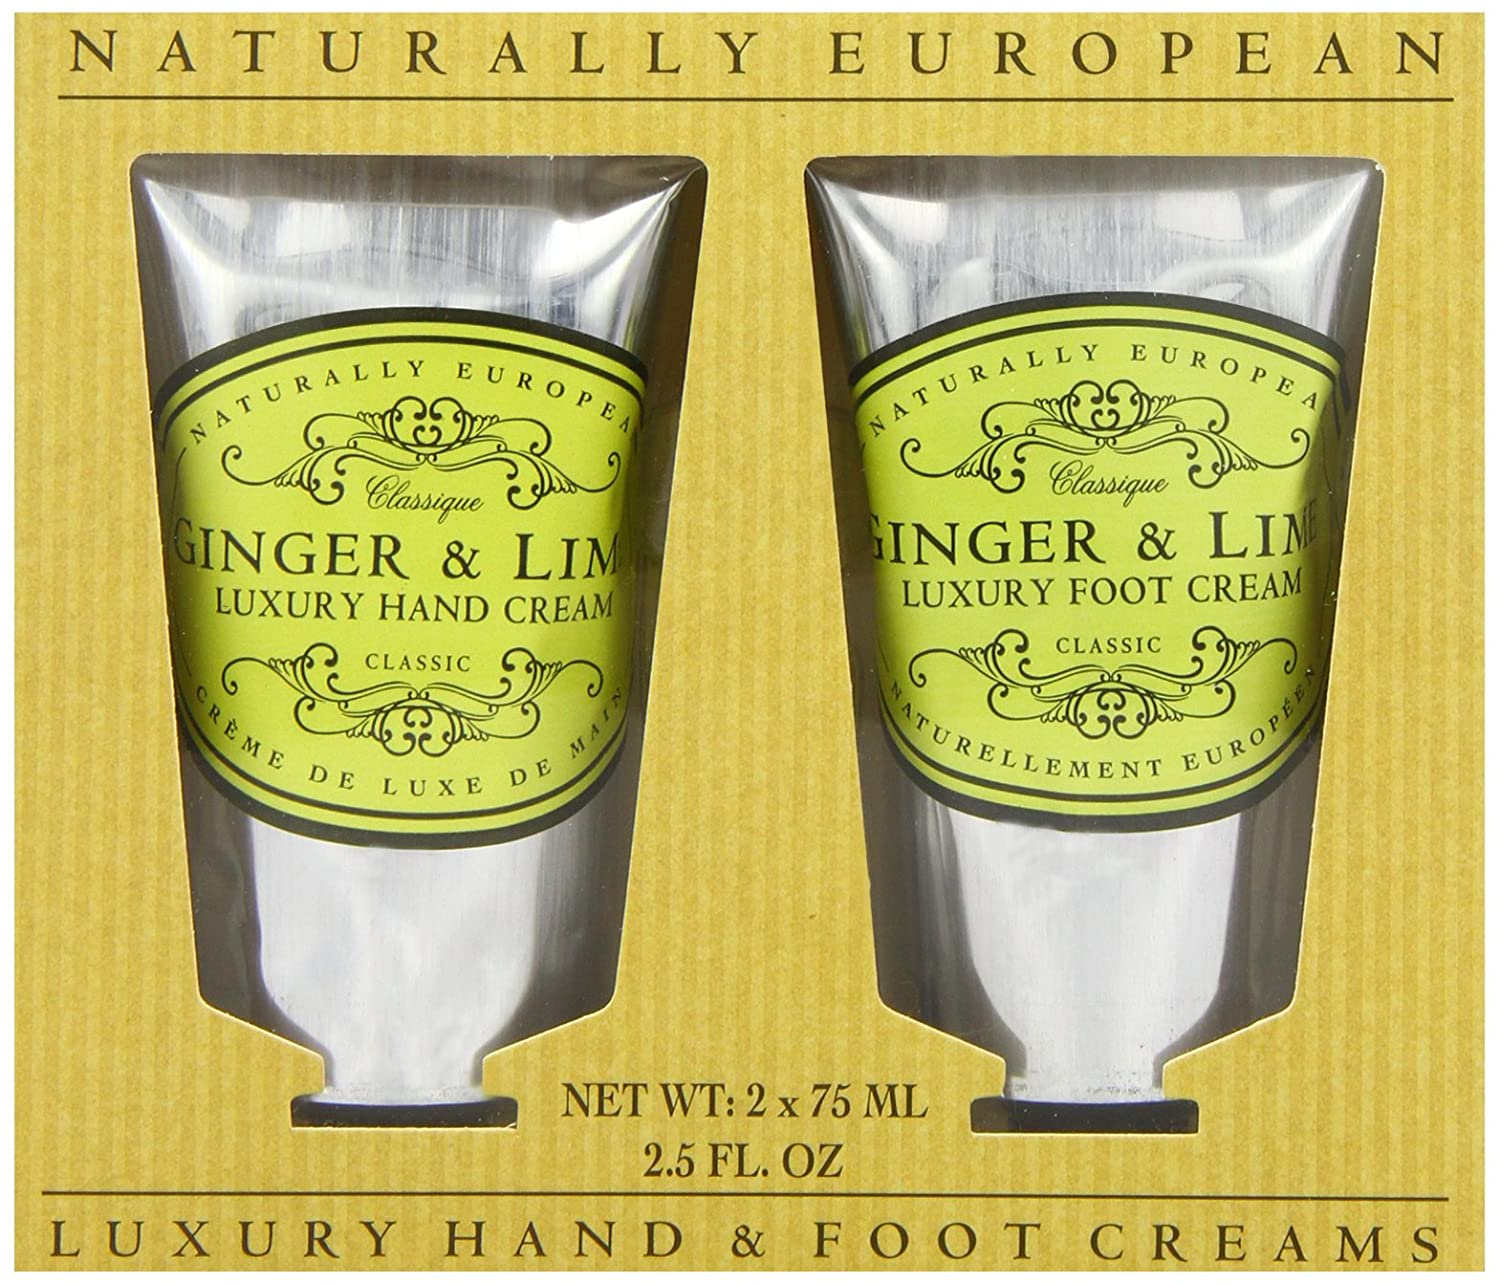 Naturally European Ginger And Lime Luxury Hand And Foot Cream Gift Set Collection 2 x 75ml…